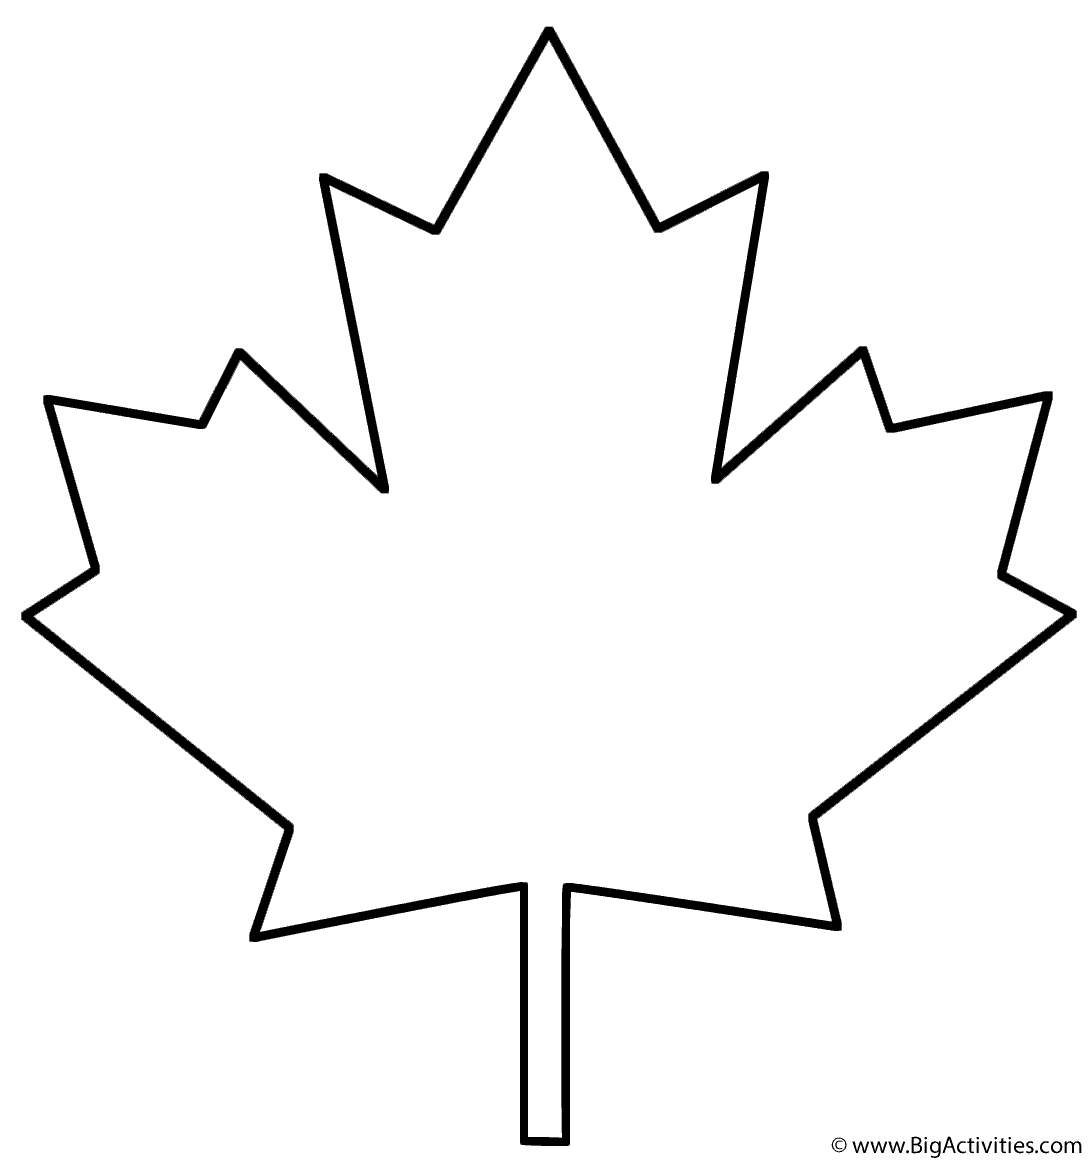 Maple Leaf Coloring Page Plants